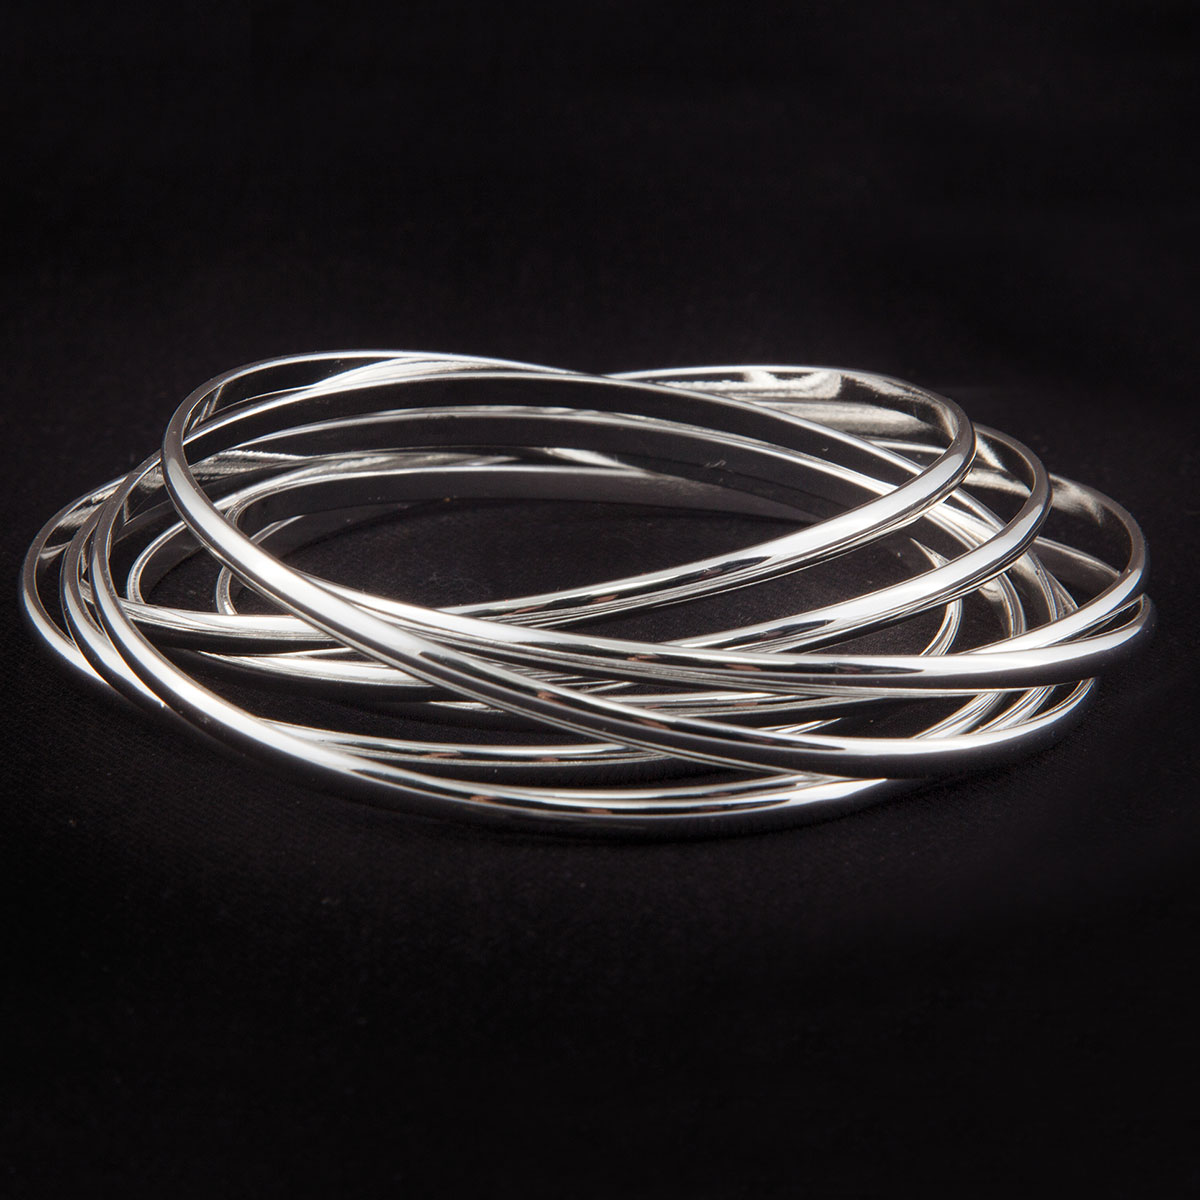 "Shiny Silver Gypsy Bangle Bracelet 1""x9"" Set of 8"